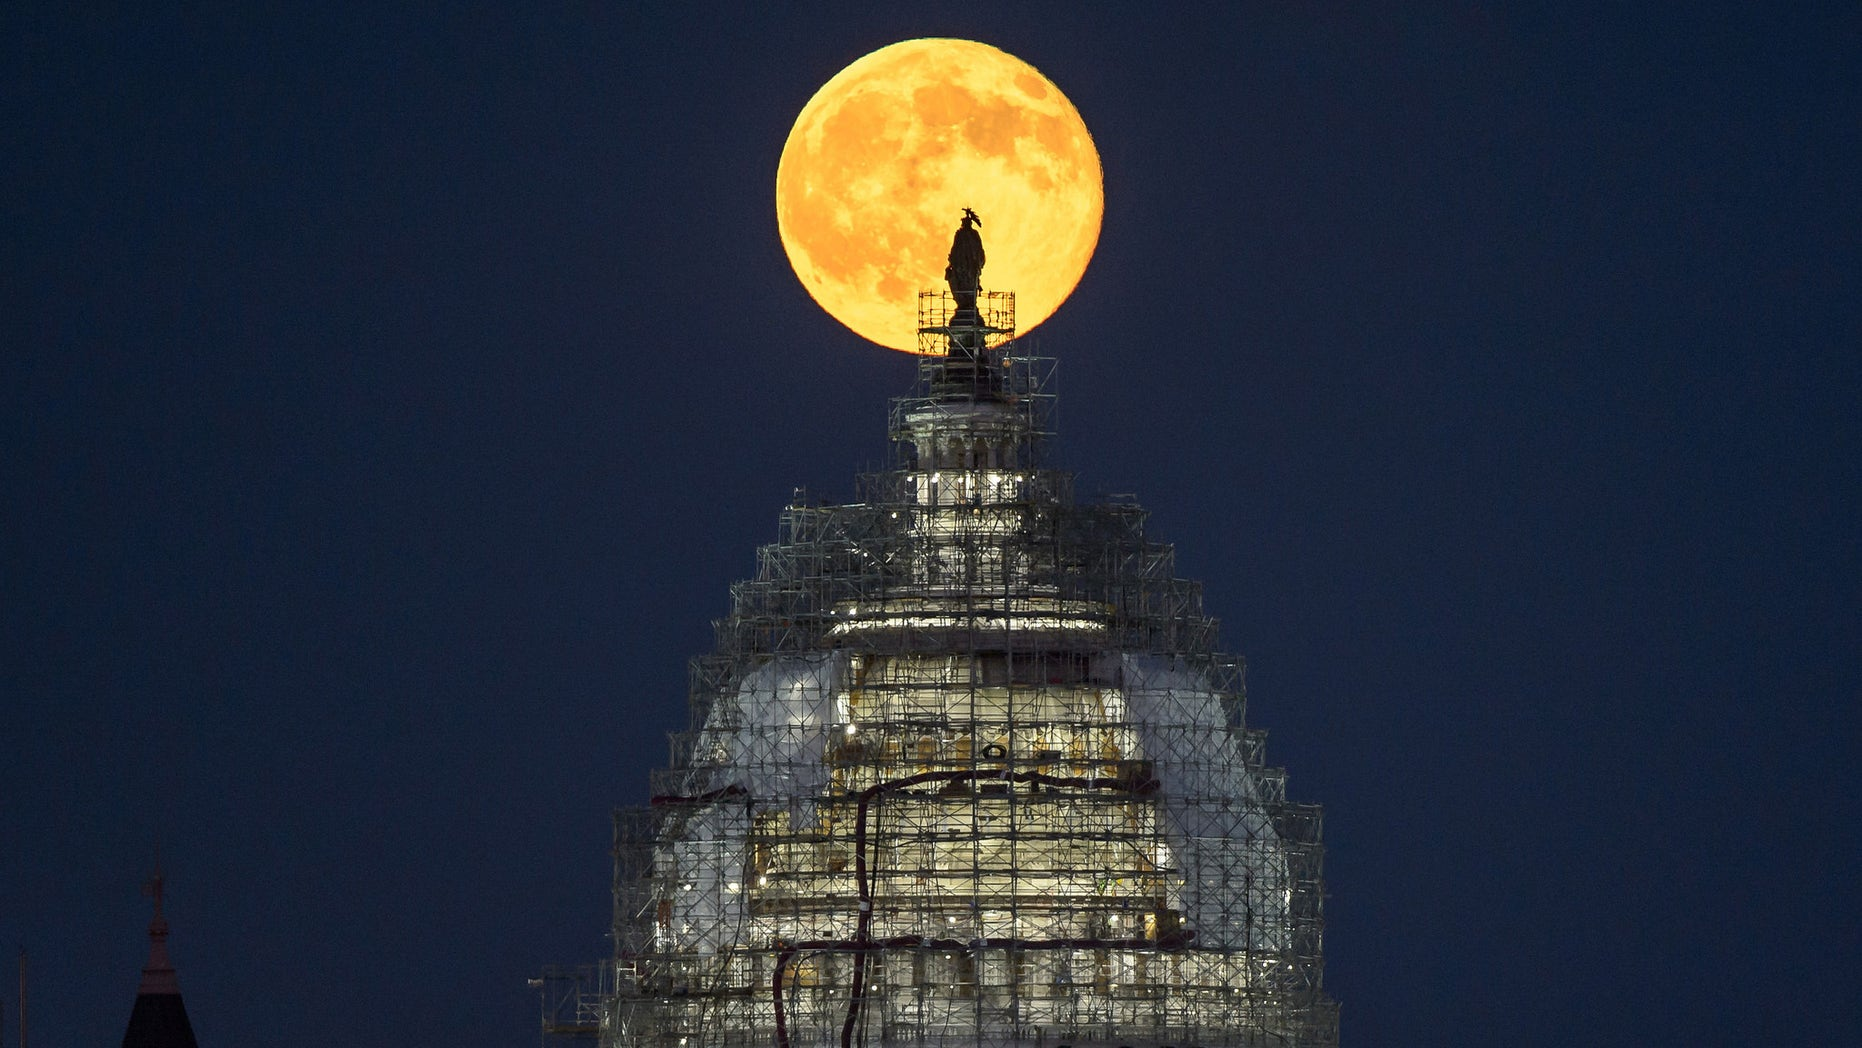 """The """"blue moon"""" full moon of July 31, 2015 rises behind the dome the U.S. Capitol in this image from NASA photographer Bill Ingalls."""